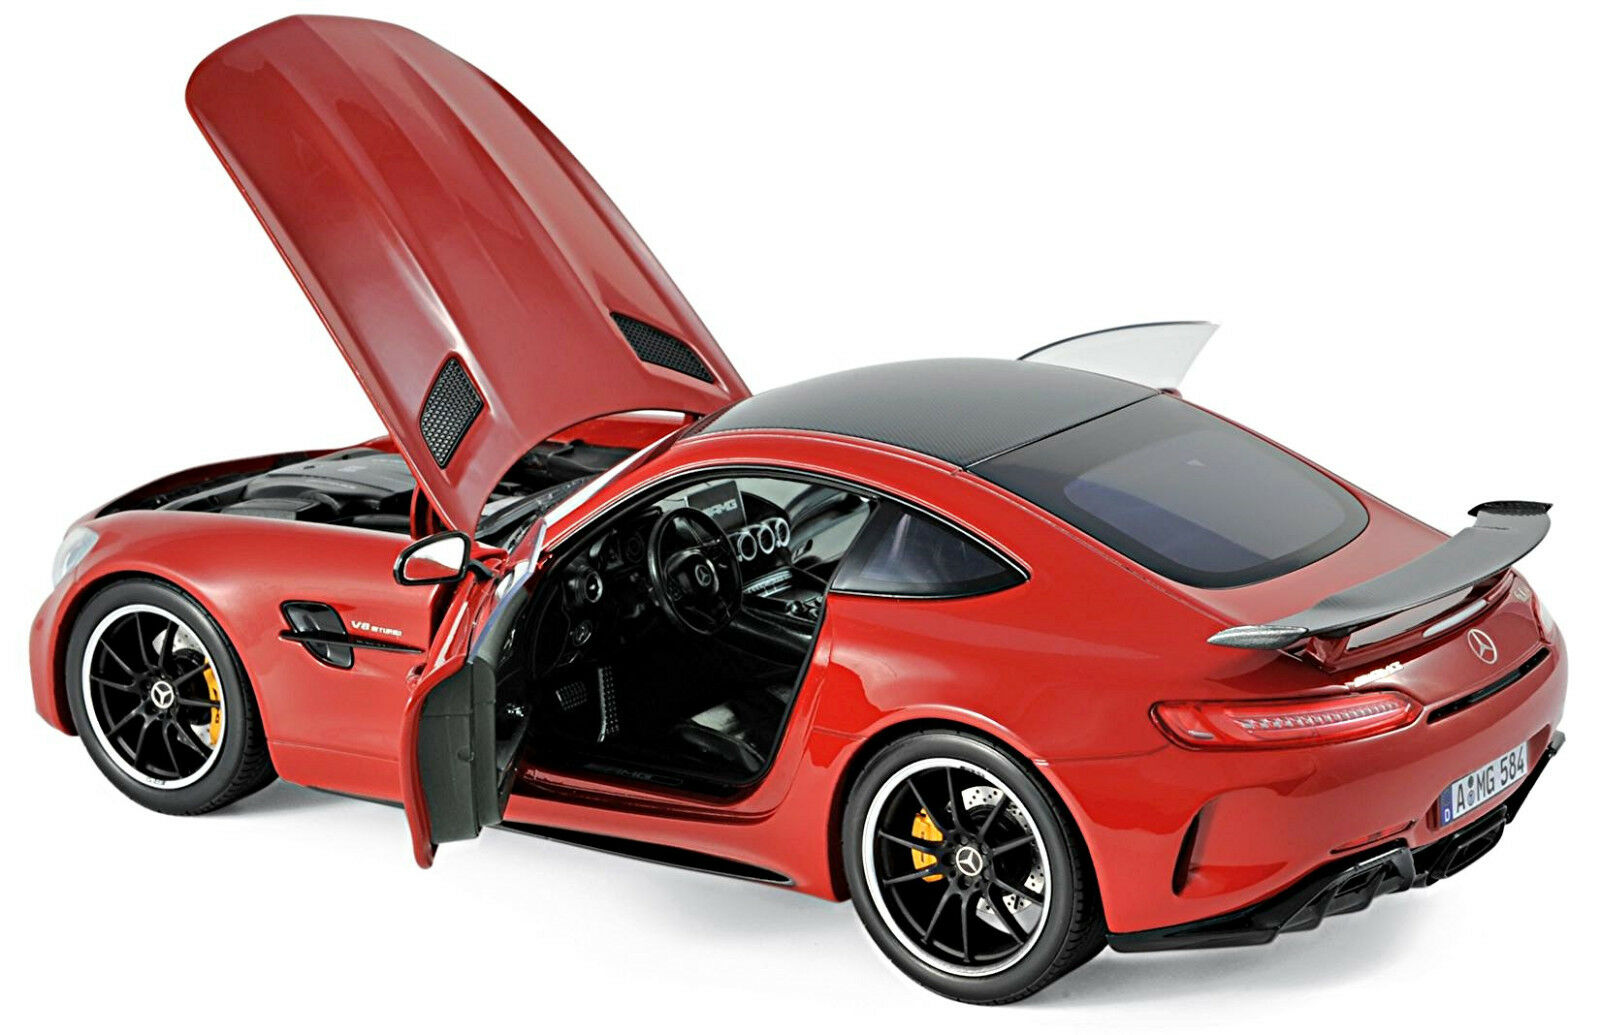 Mercedes-AMG GT R c190 Coupe 2018 Rouge rouge 1 18 Norev